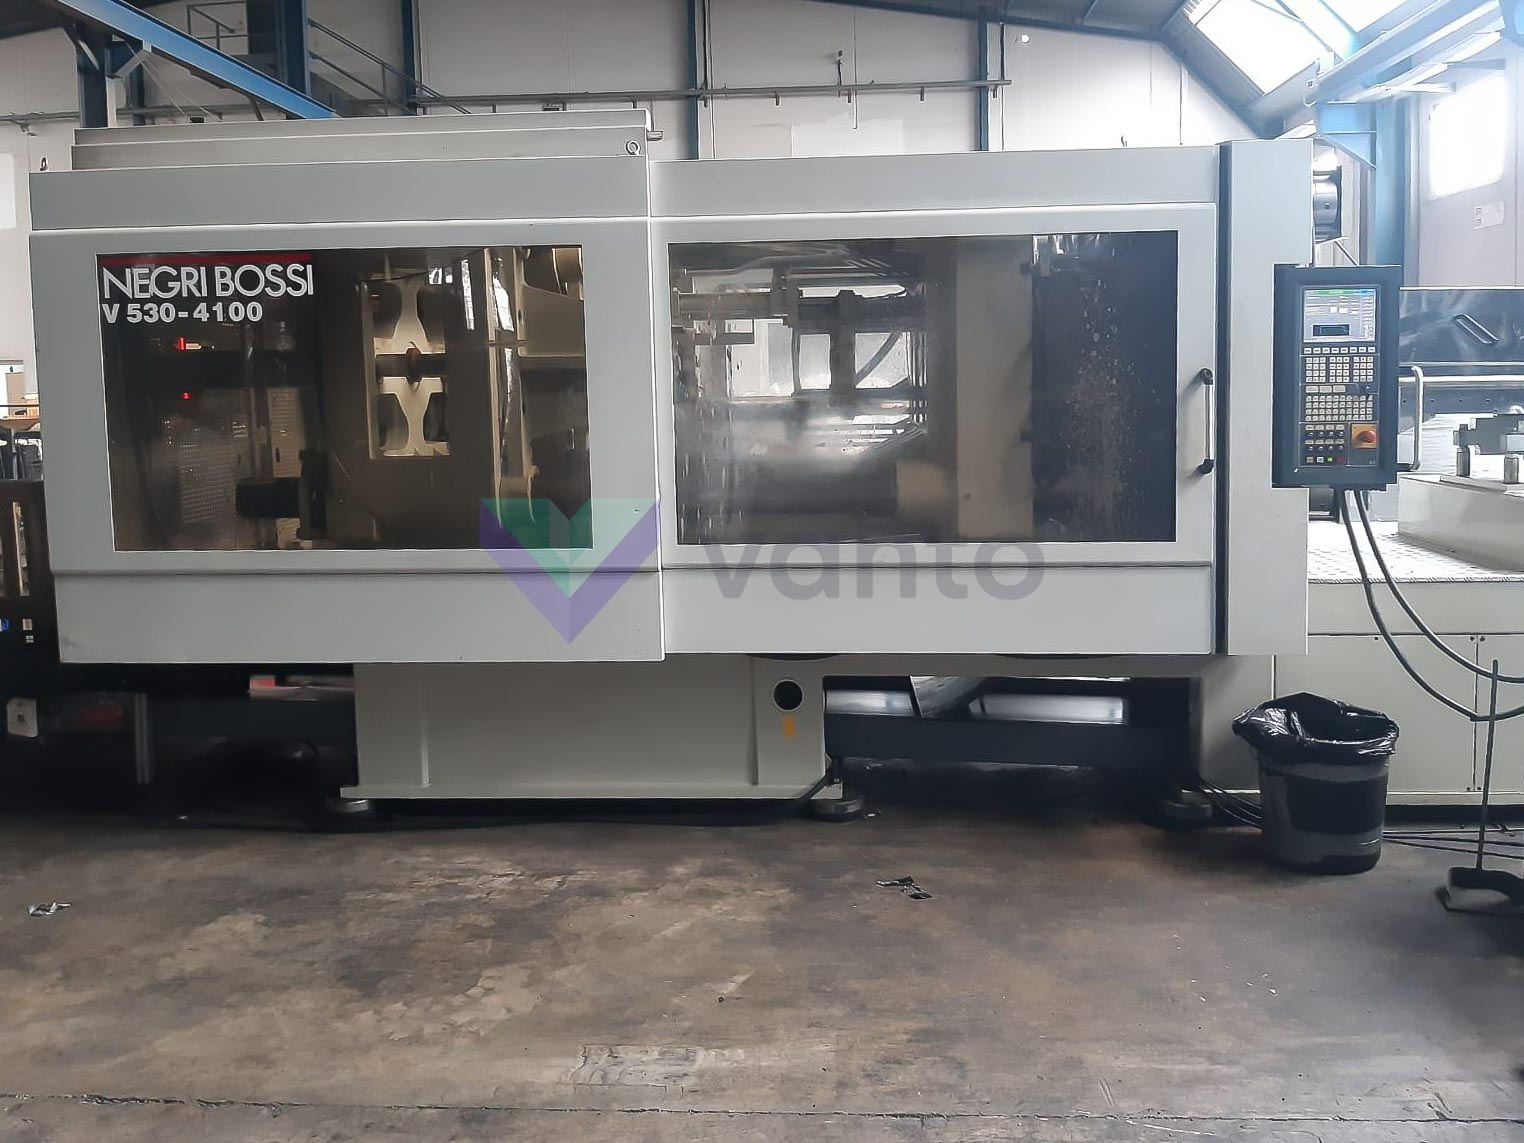 NEGRI BOSSI CANBIO V530 - 4100 530t injection molding machine (2006) id10370